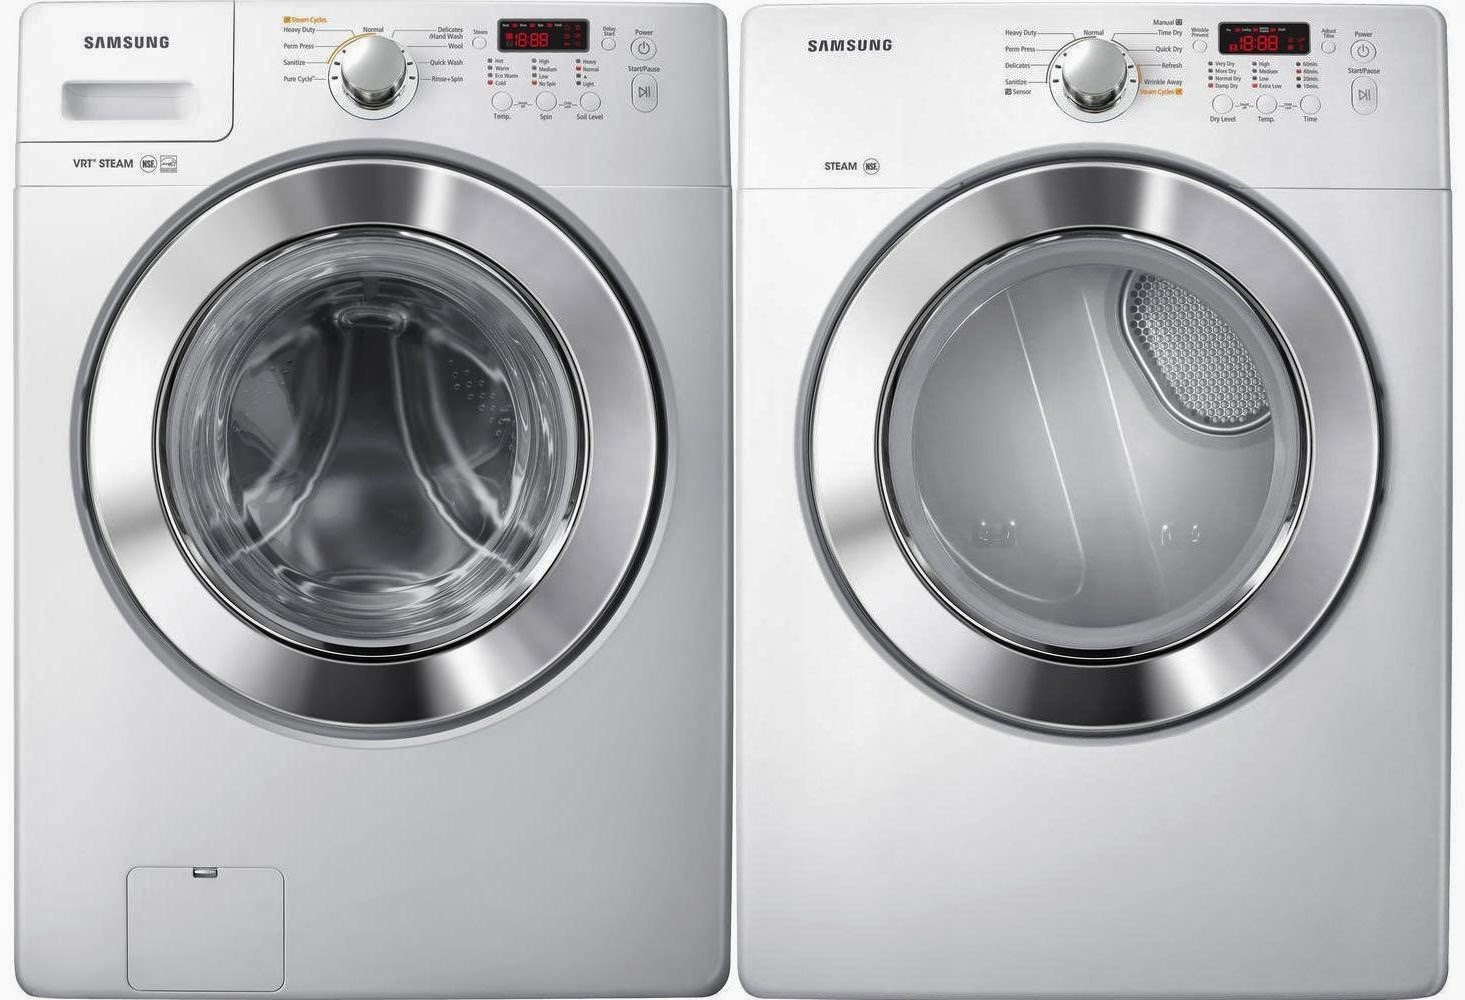 Lg all in one washer and dryer reviews - Lg All In One Washer And Dryer Reviews 12